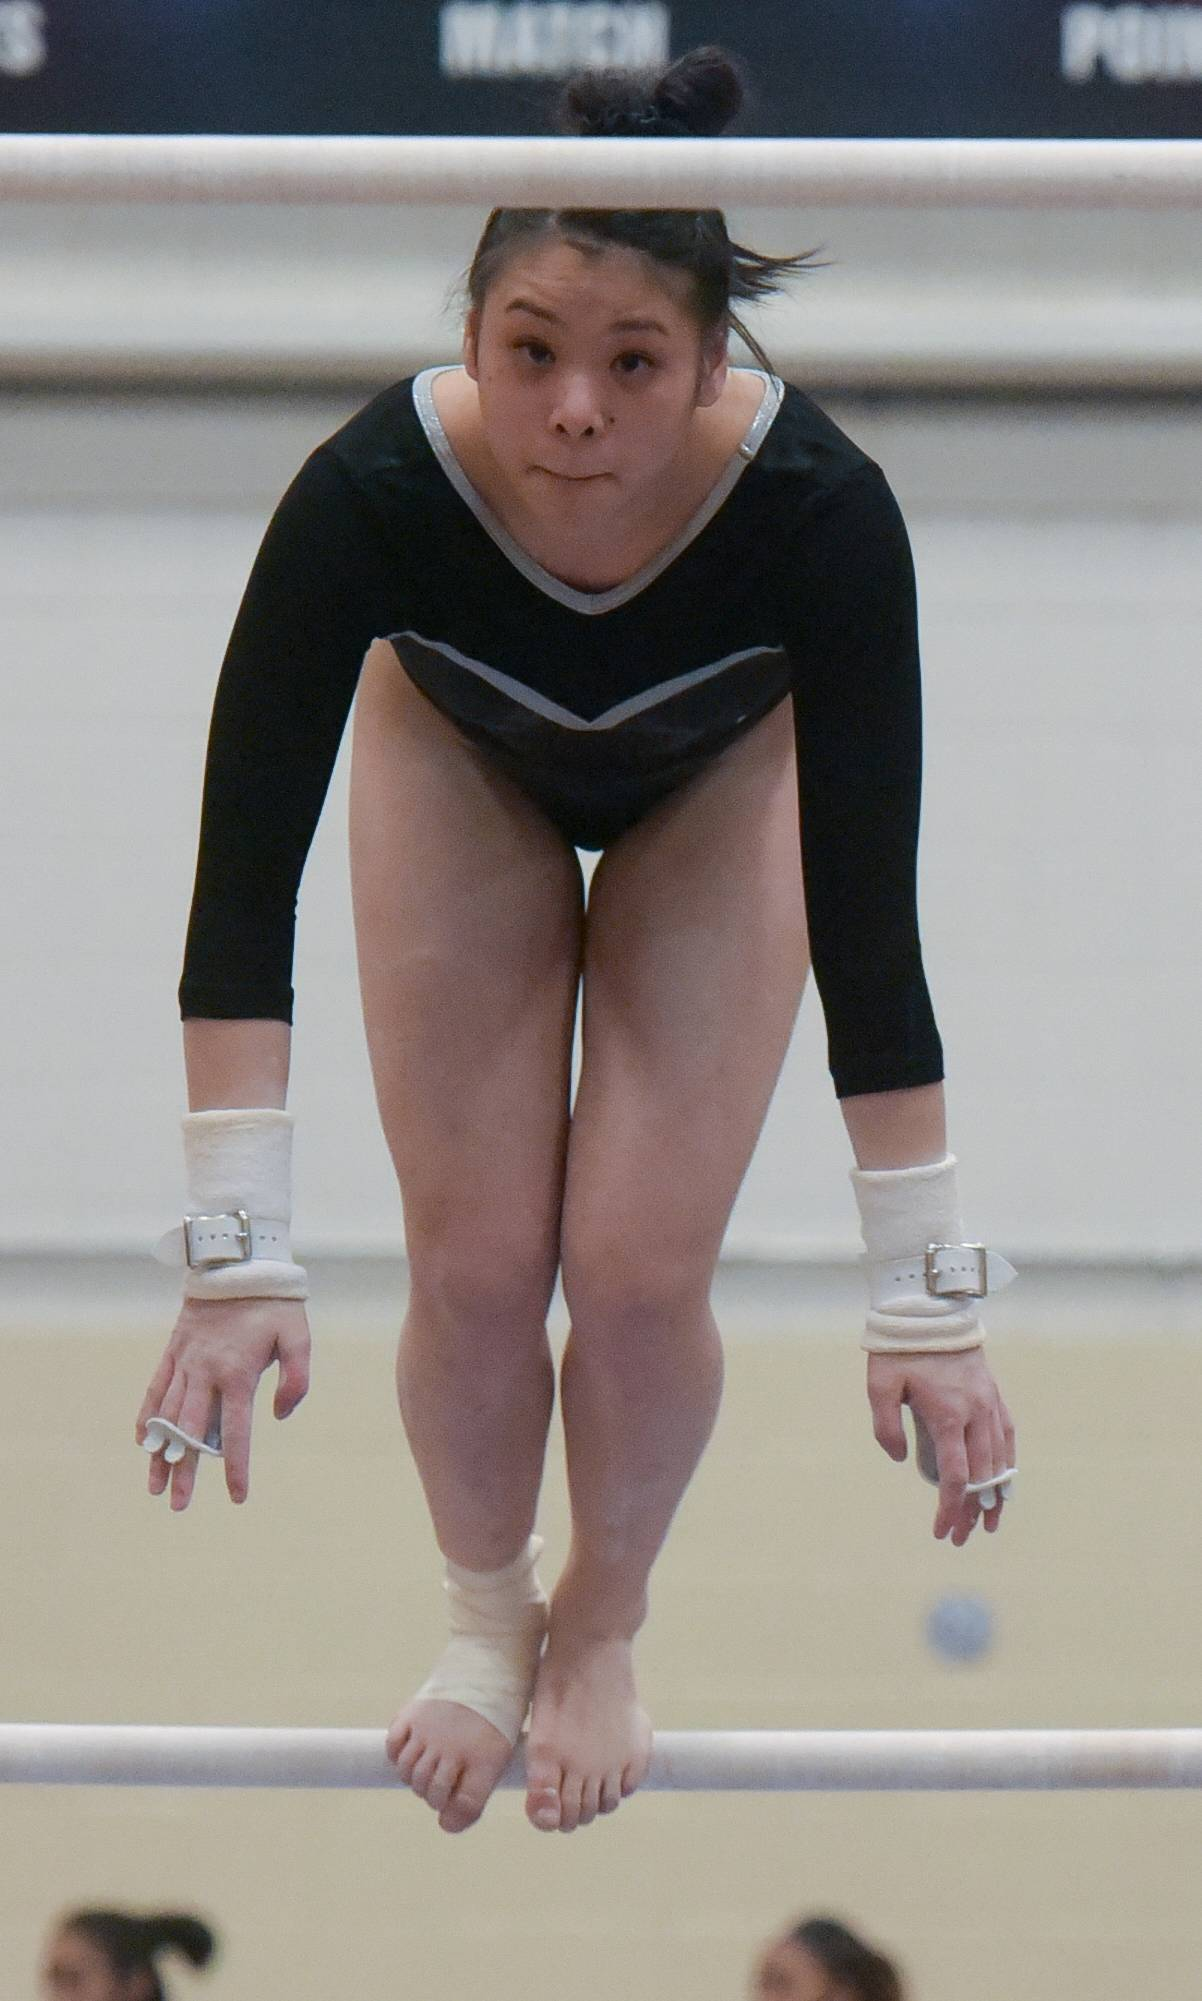 St. Charles' Emma Grace Redmond-Mattucci returns for her senior season on the St. Charles co-op girls gymnastics team.